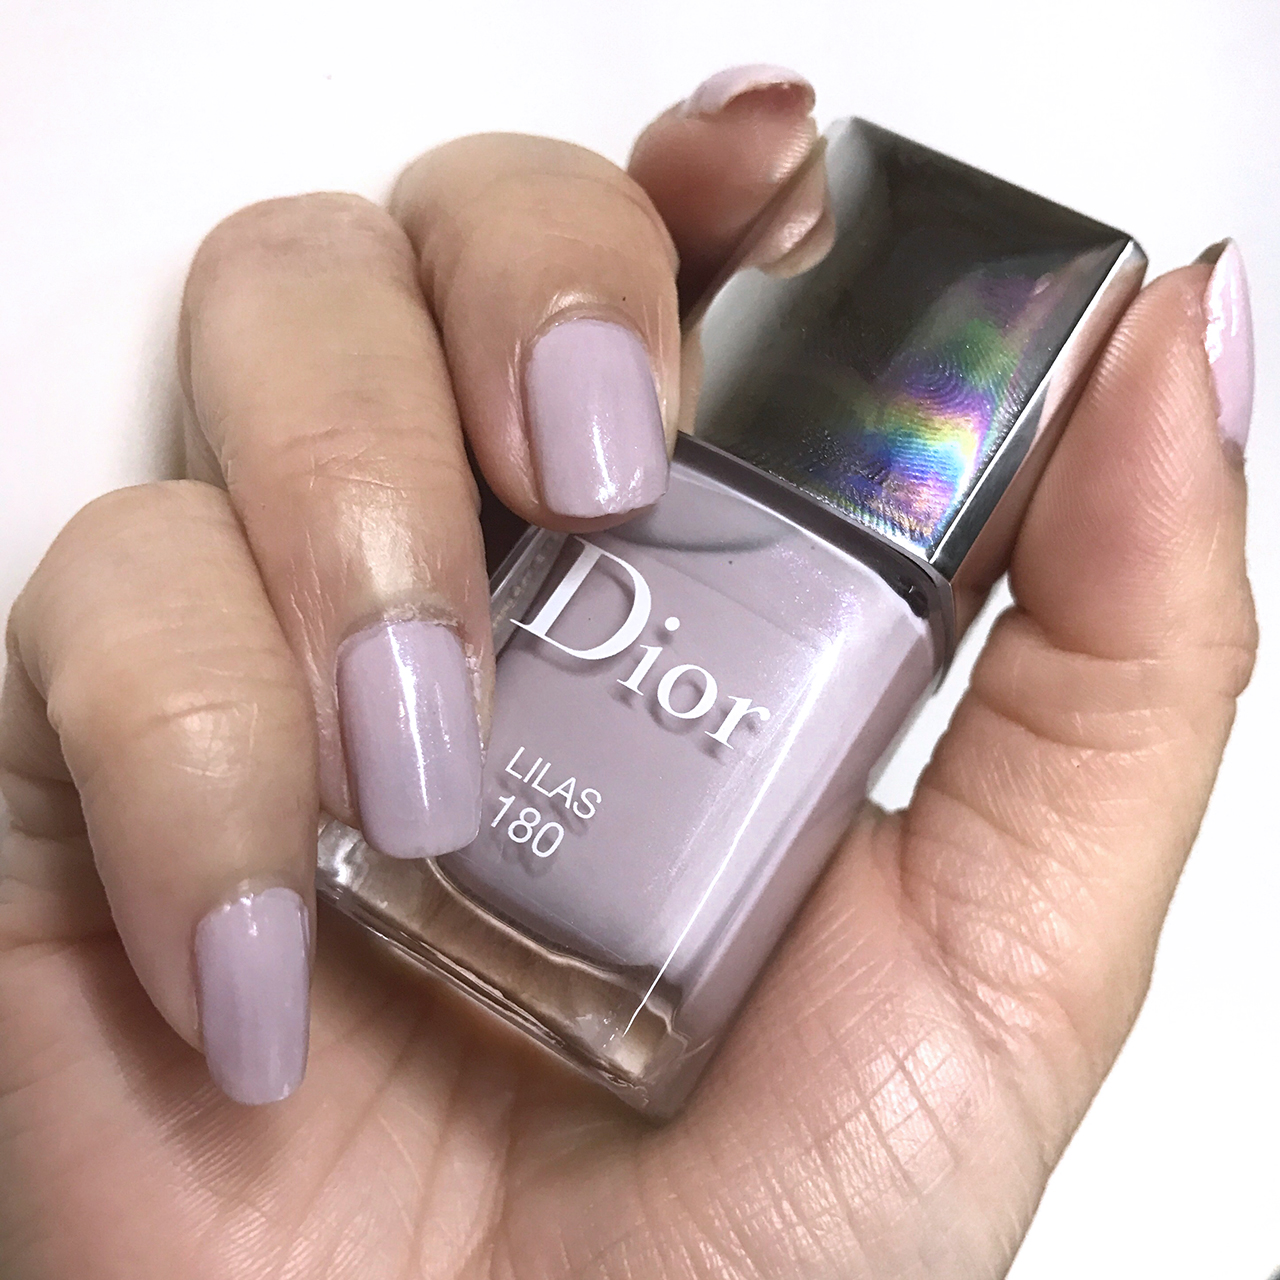 Dior Le Vernis Lilas nail swatch